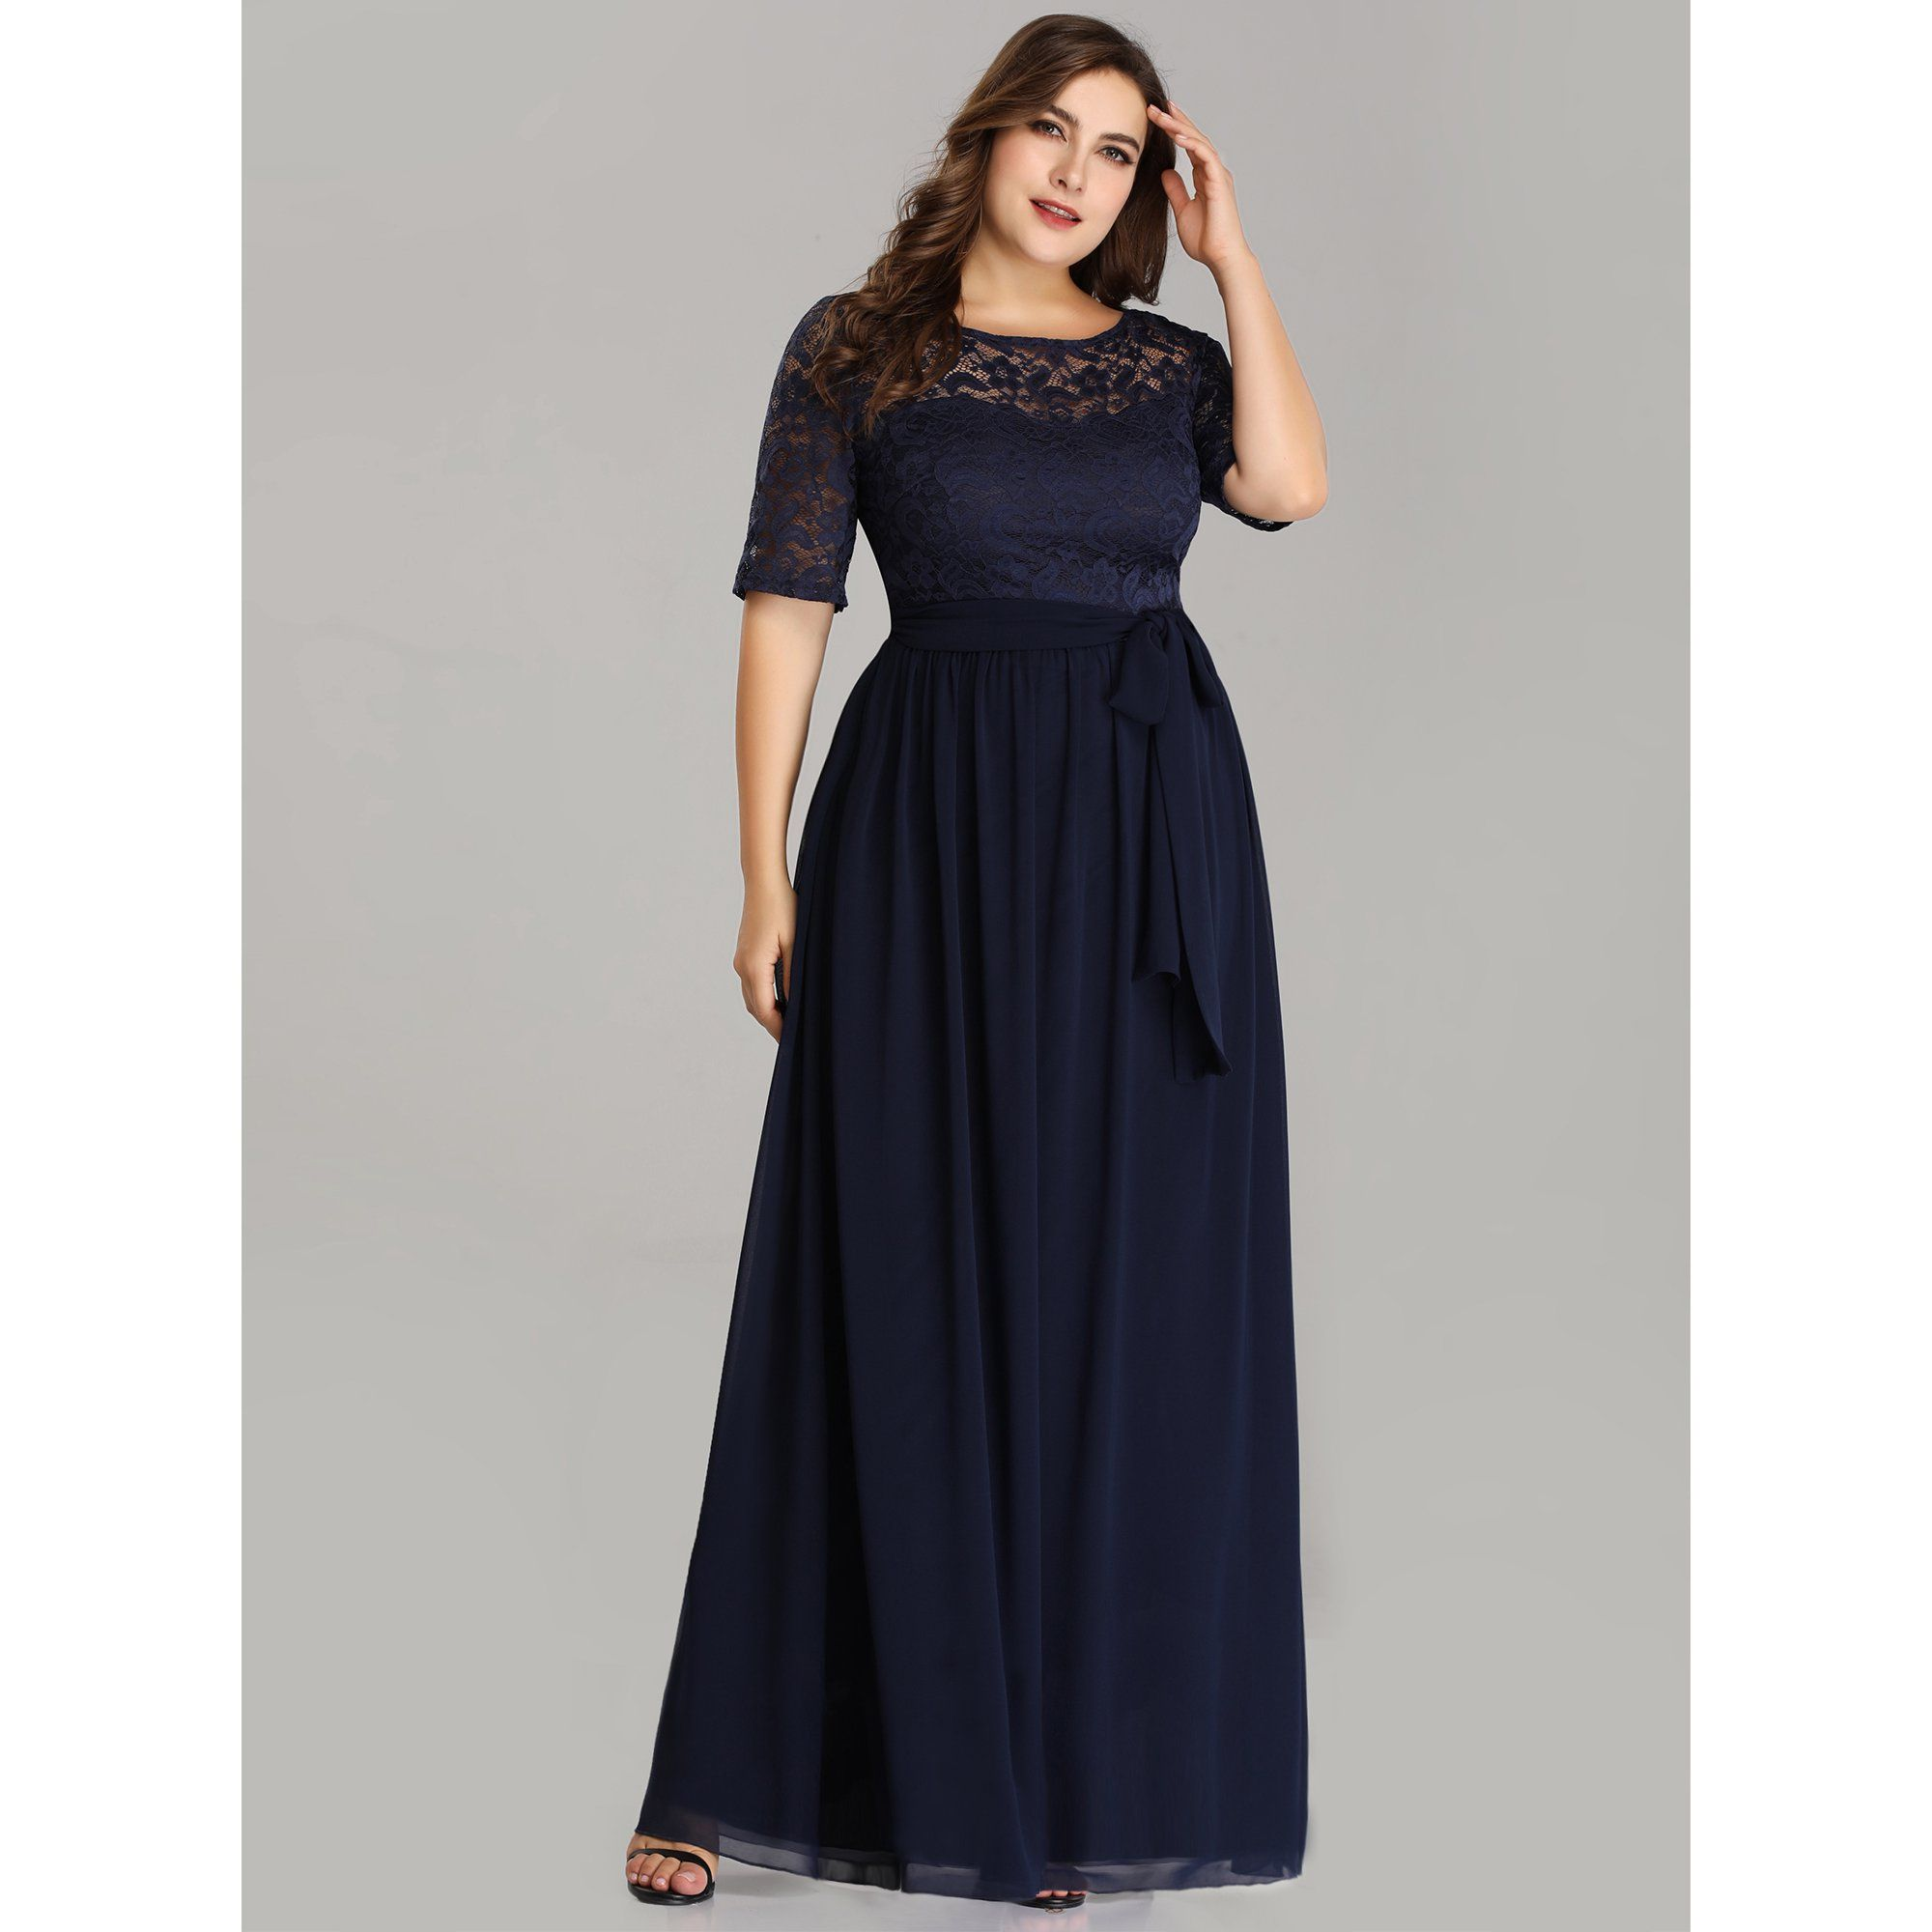 Ever Pretty Ever Pretty Womens Plus Size Mother Of The Bride Dresses For Women 07624 Navy Blue Us16 Walmart Com In 2021 Plus Size Evening Gown Maxi Dress Evening Chiffon Cocktail Dress [ 2000 x 2000 Pixel ]